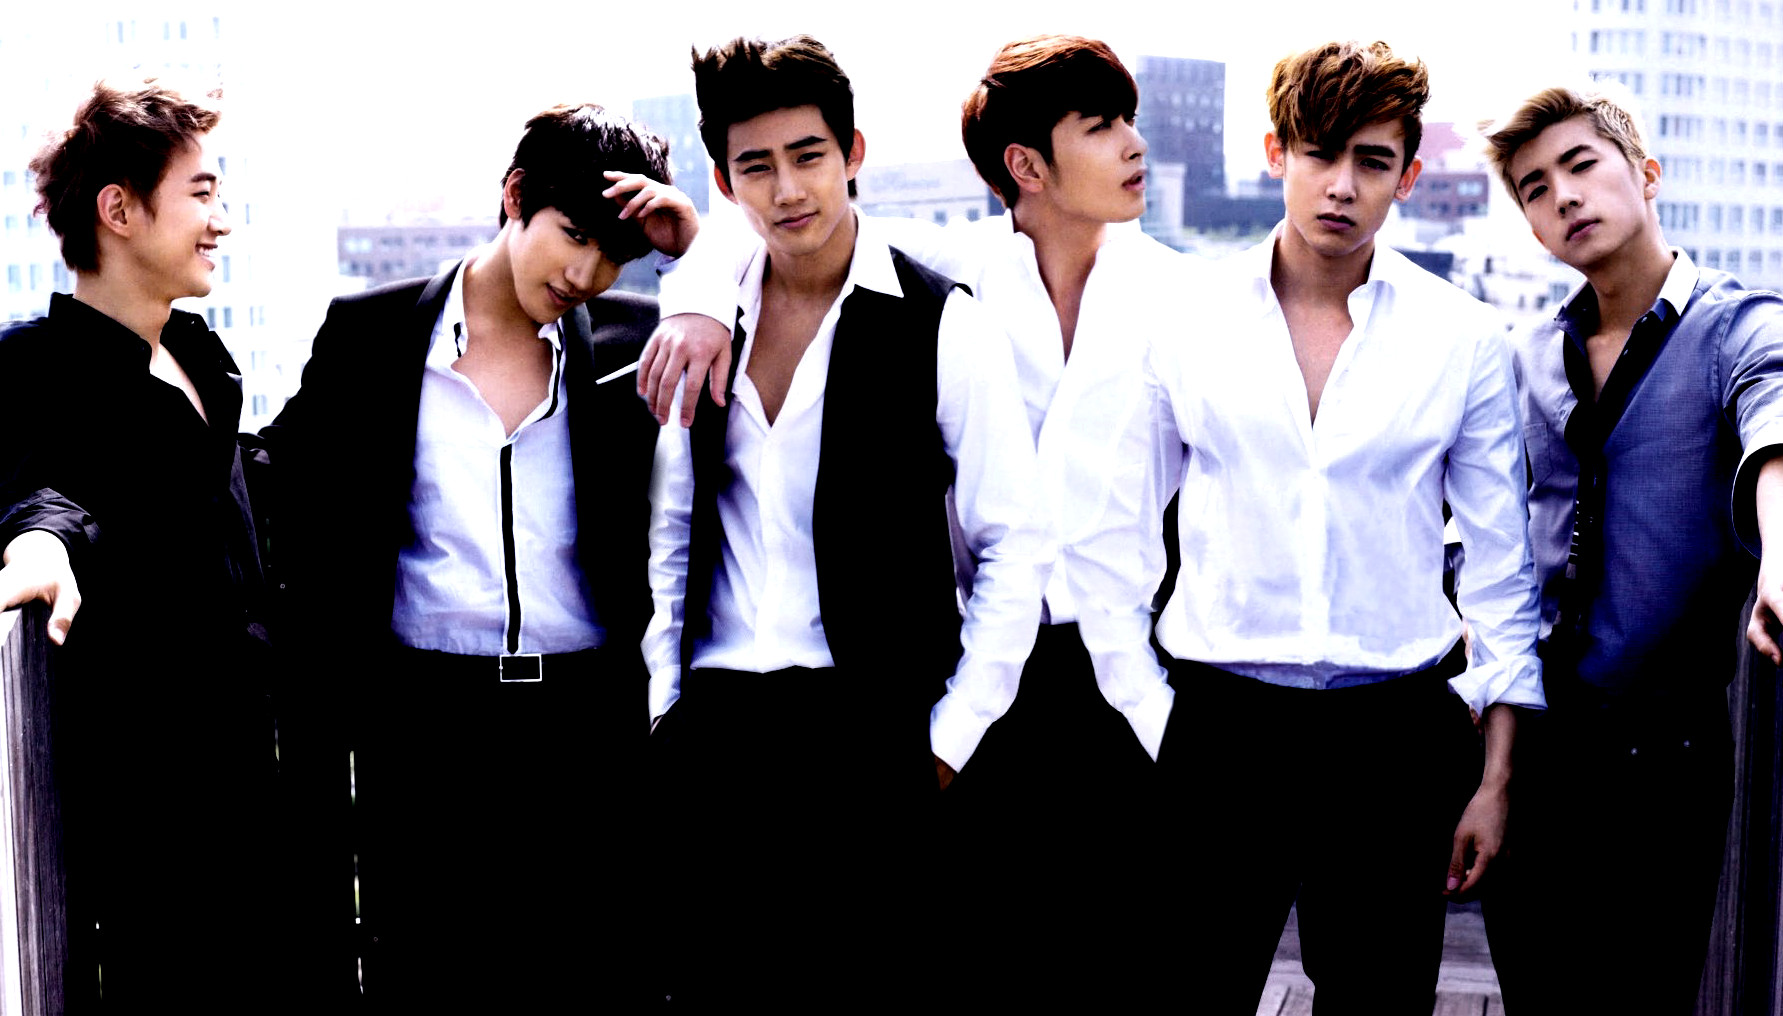 2pm_wallpaper_by_kpop2pmd4vo51f.jpg